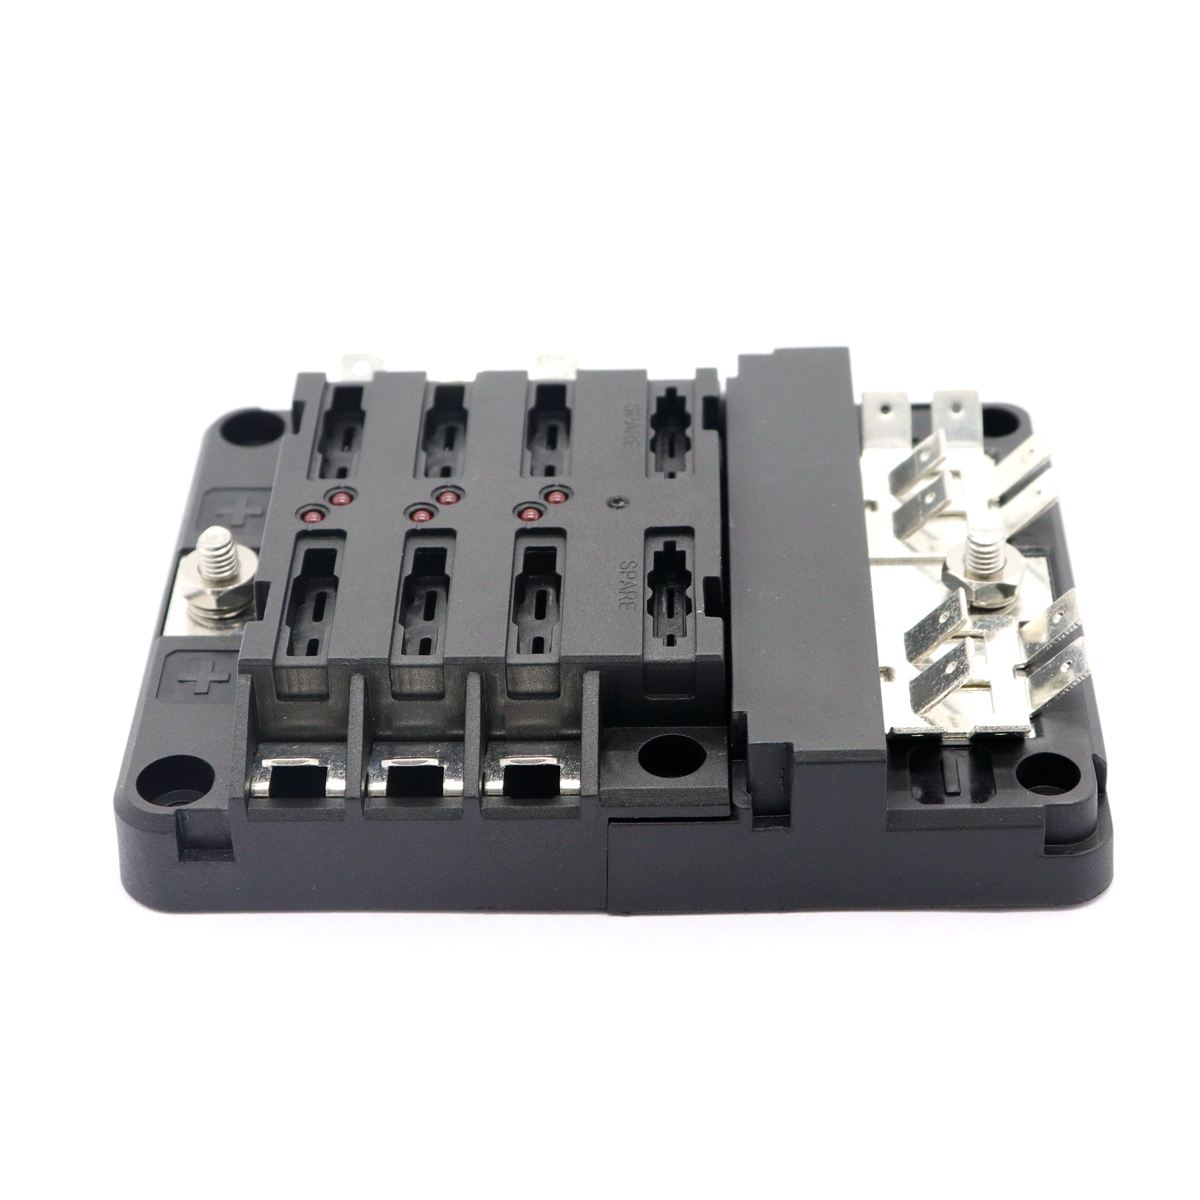 universal car blade fuse block 6 circuits ground negative cover abs plastic for bus bar cover boat marine car accessory tool in fuses from automobiles  [ 1200 x 1200 Pixel ]